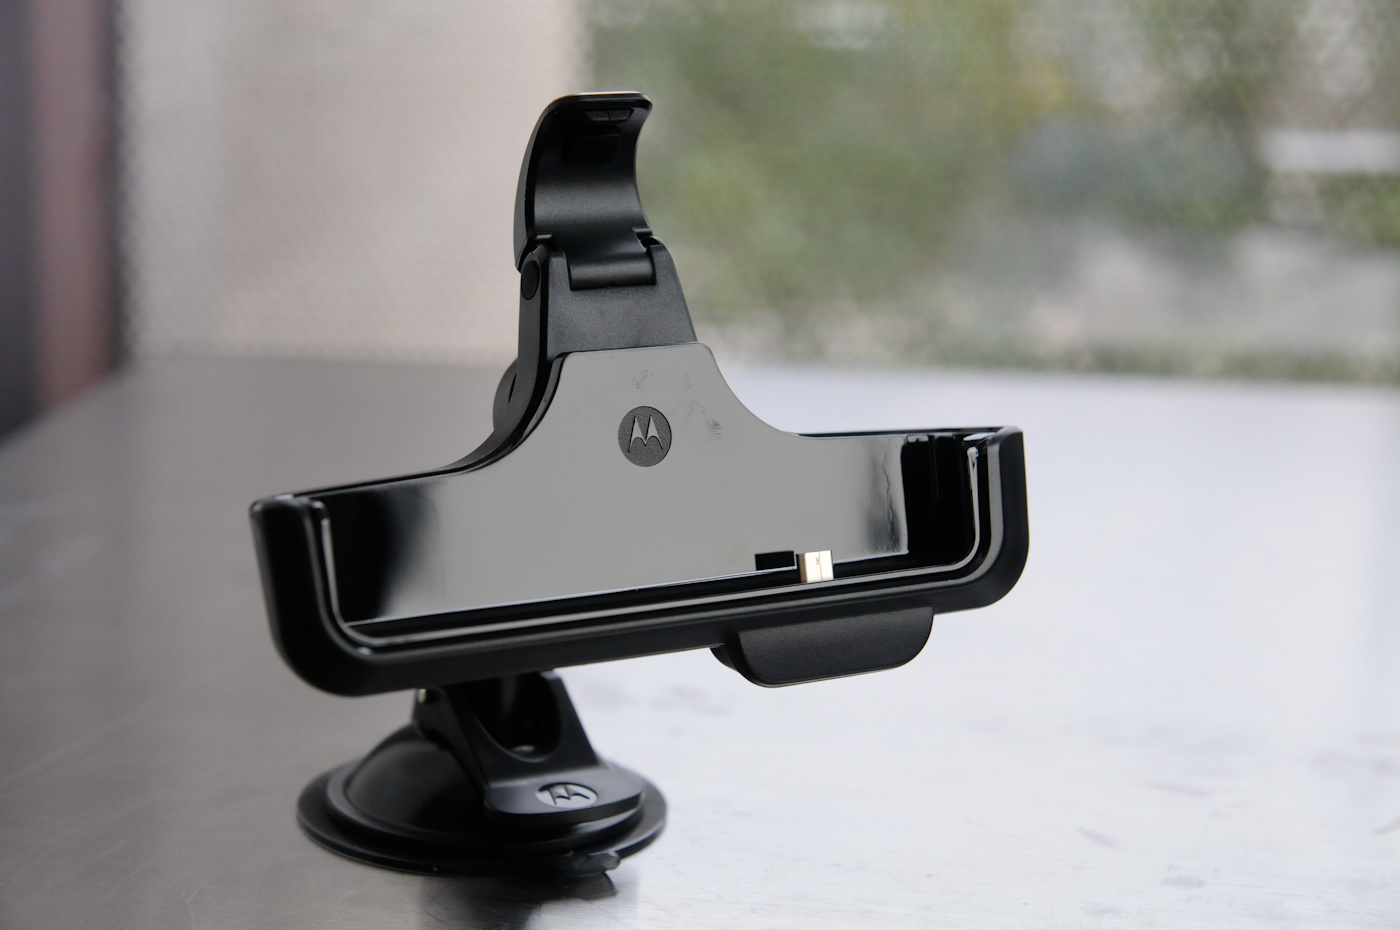 Droid 3 Car Dock - Motorola Droid 3 Review - Third Time\'s a Charm